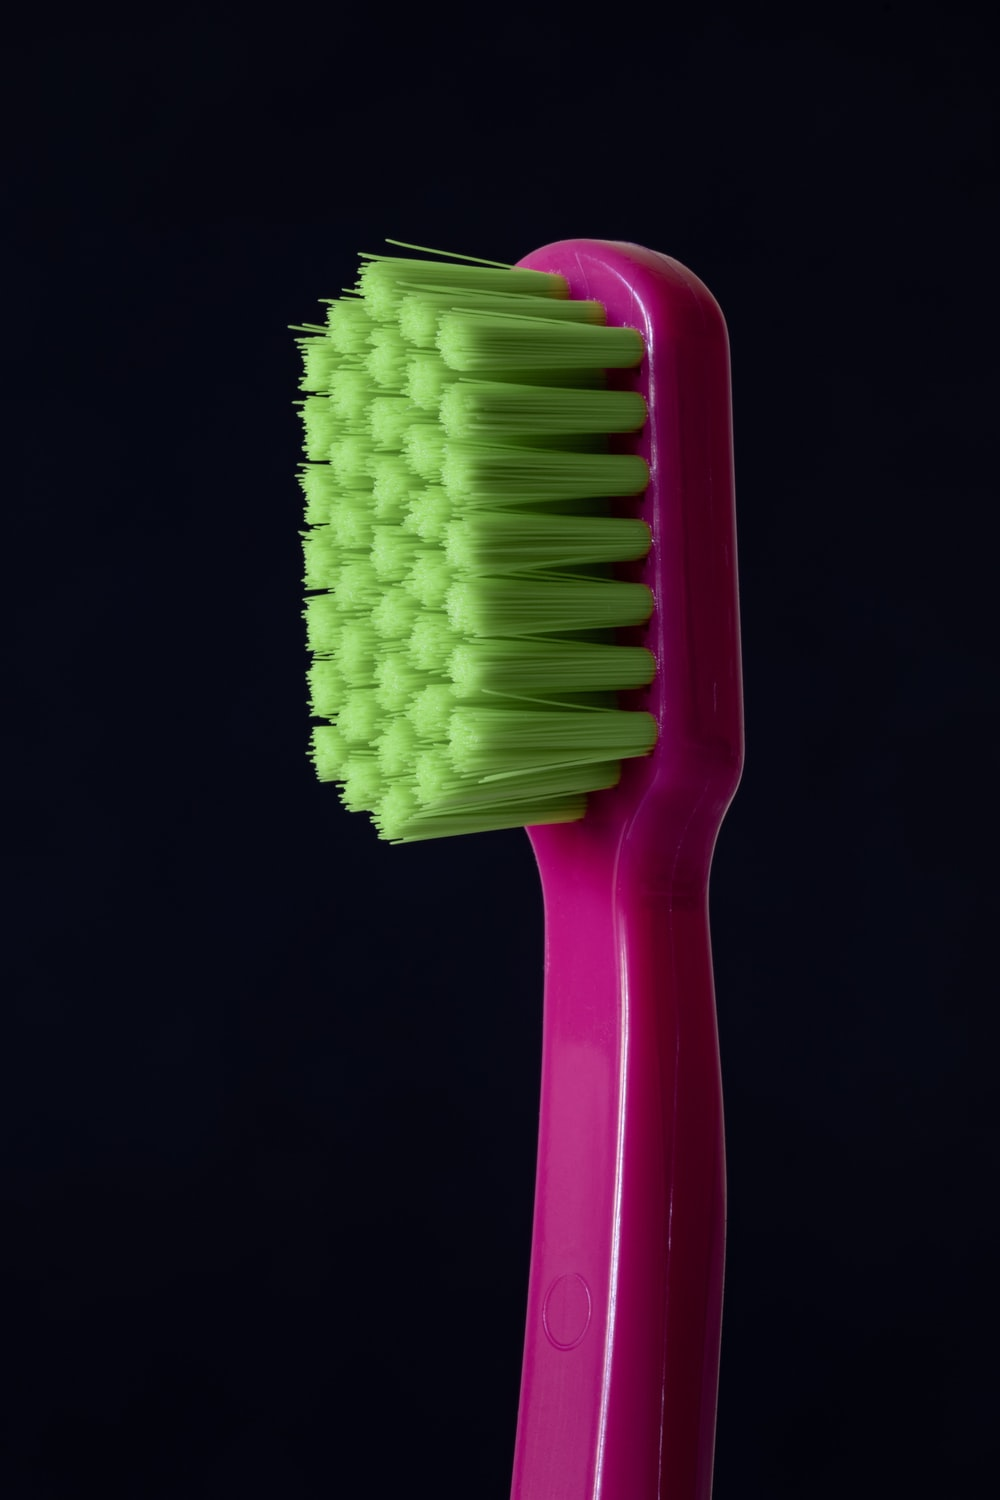 closeup photo of purple and green toothbrush